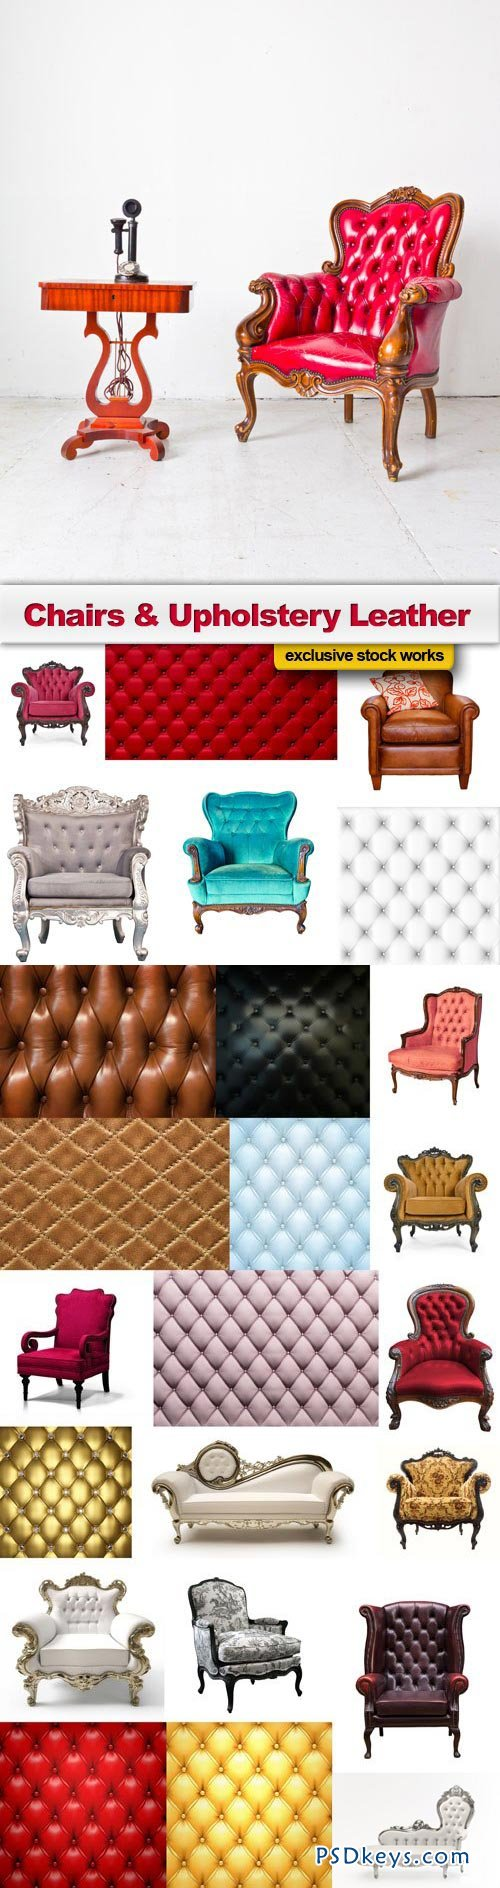 Chairs & Upholstery Leather - 25xJPEG